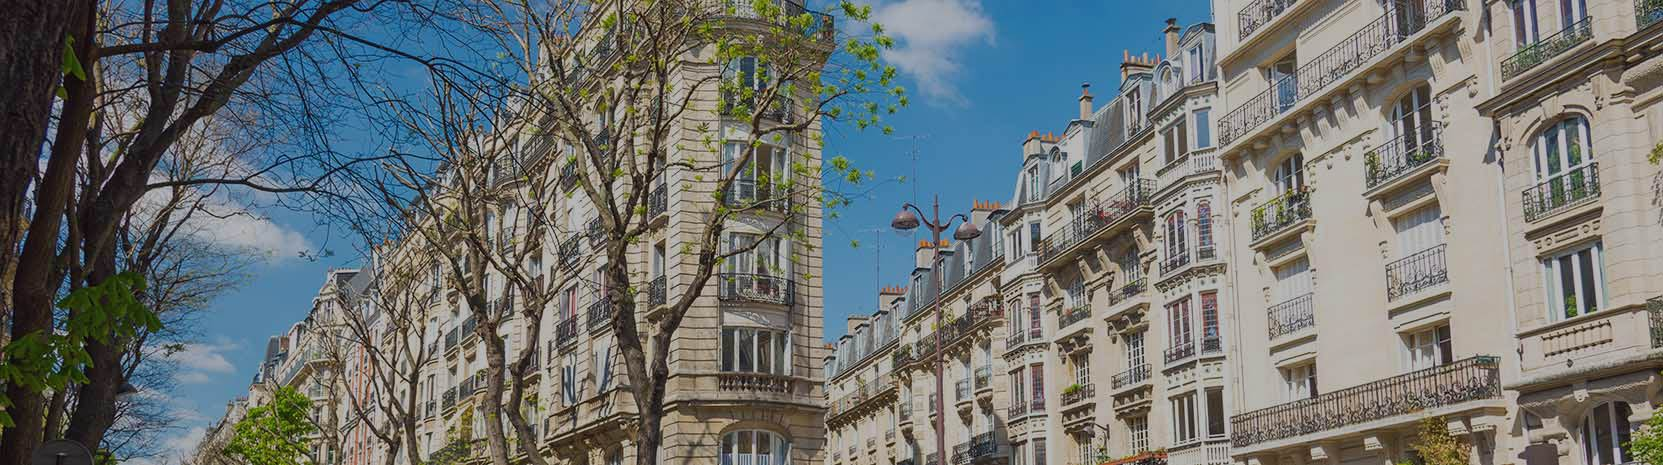 choisir son quartier a paris